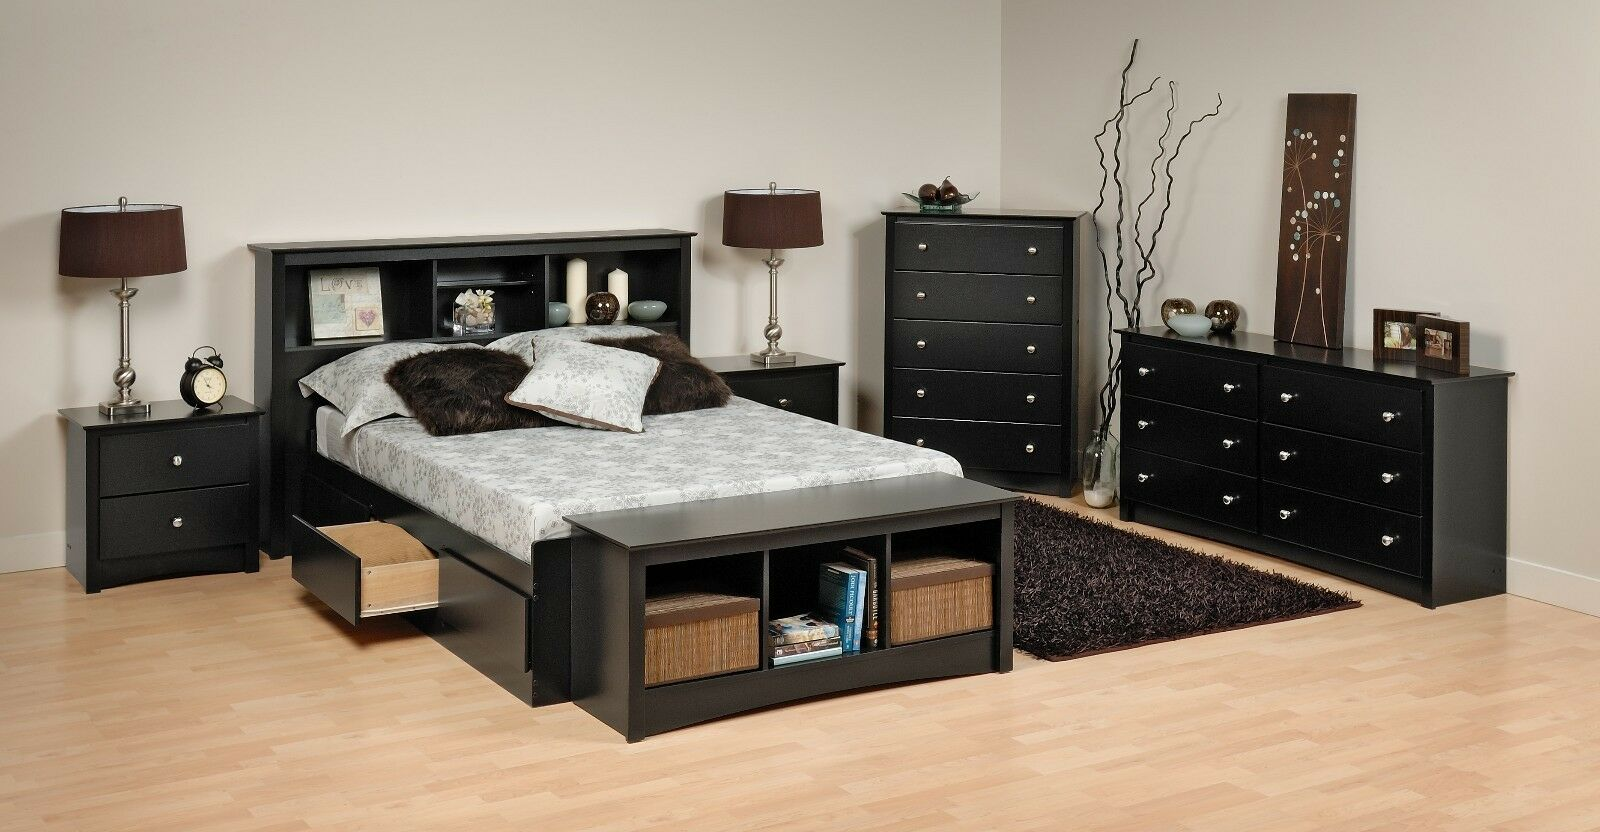 Prepac Sonoma Platform Storage Bed, Dresser, Chest, Nightsta